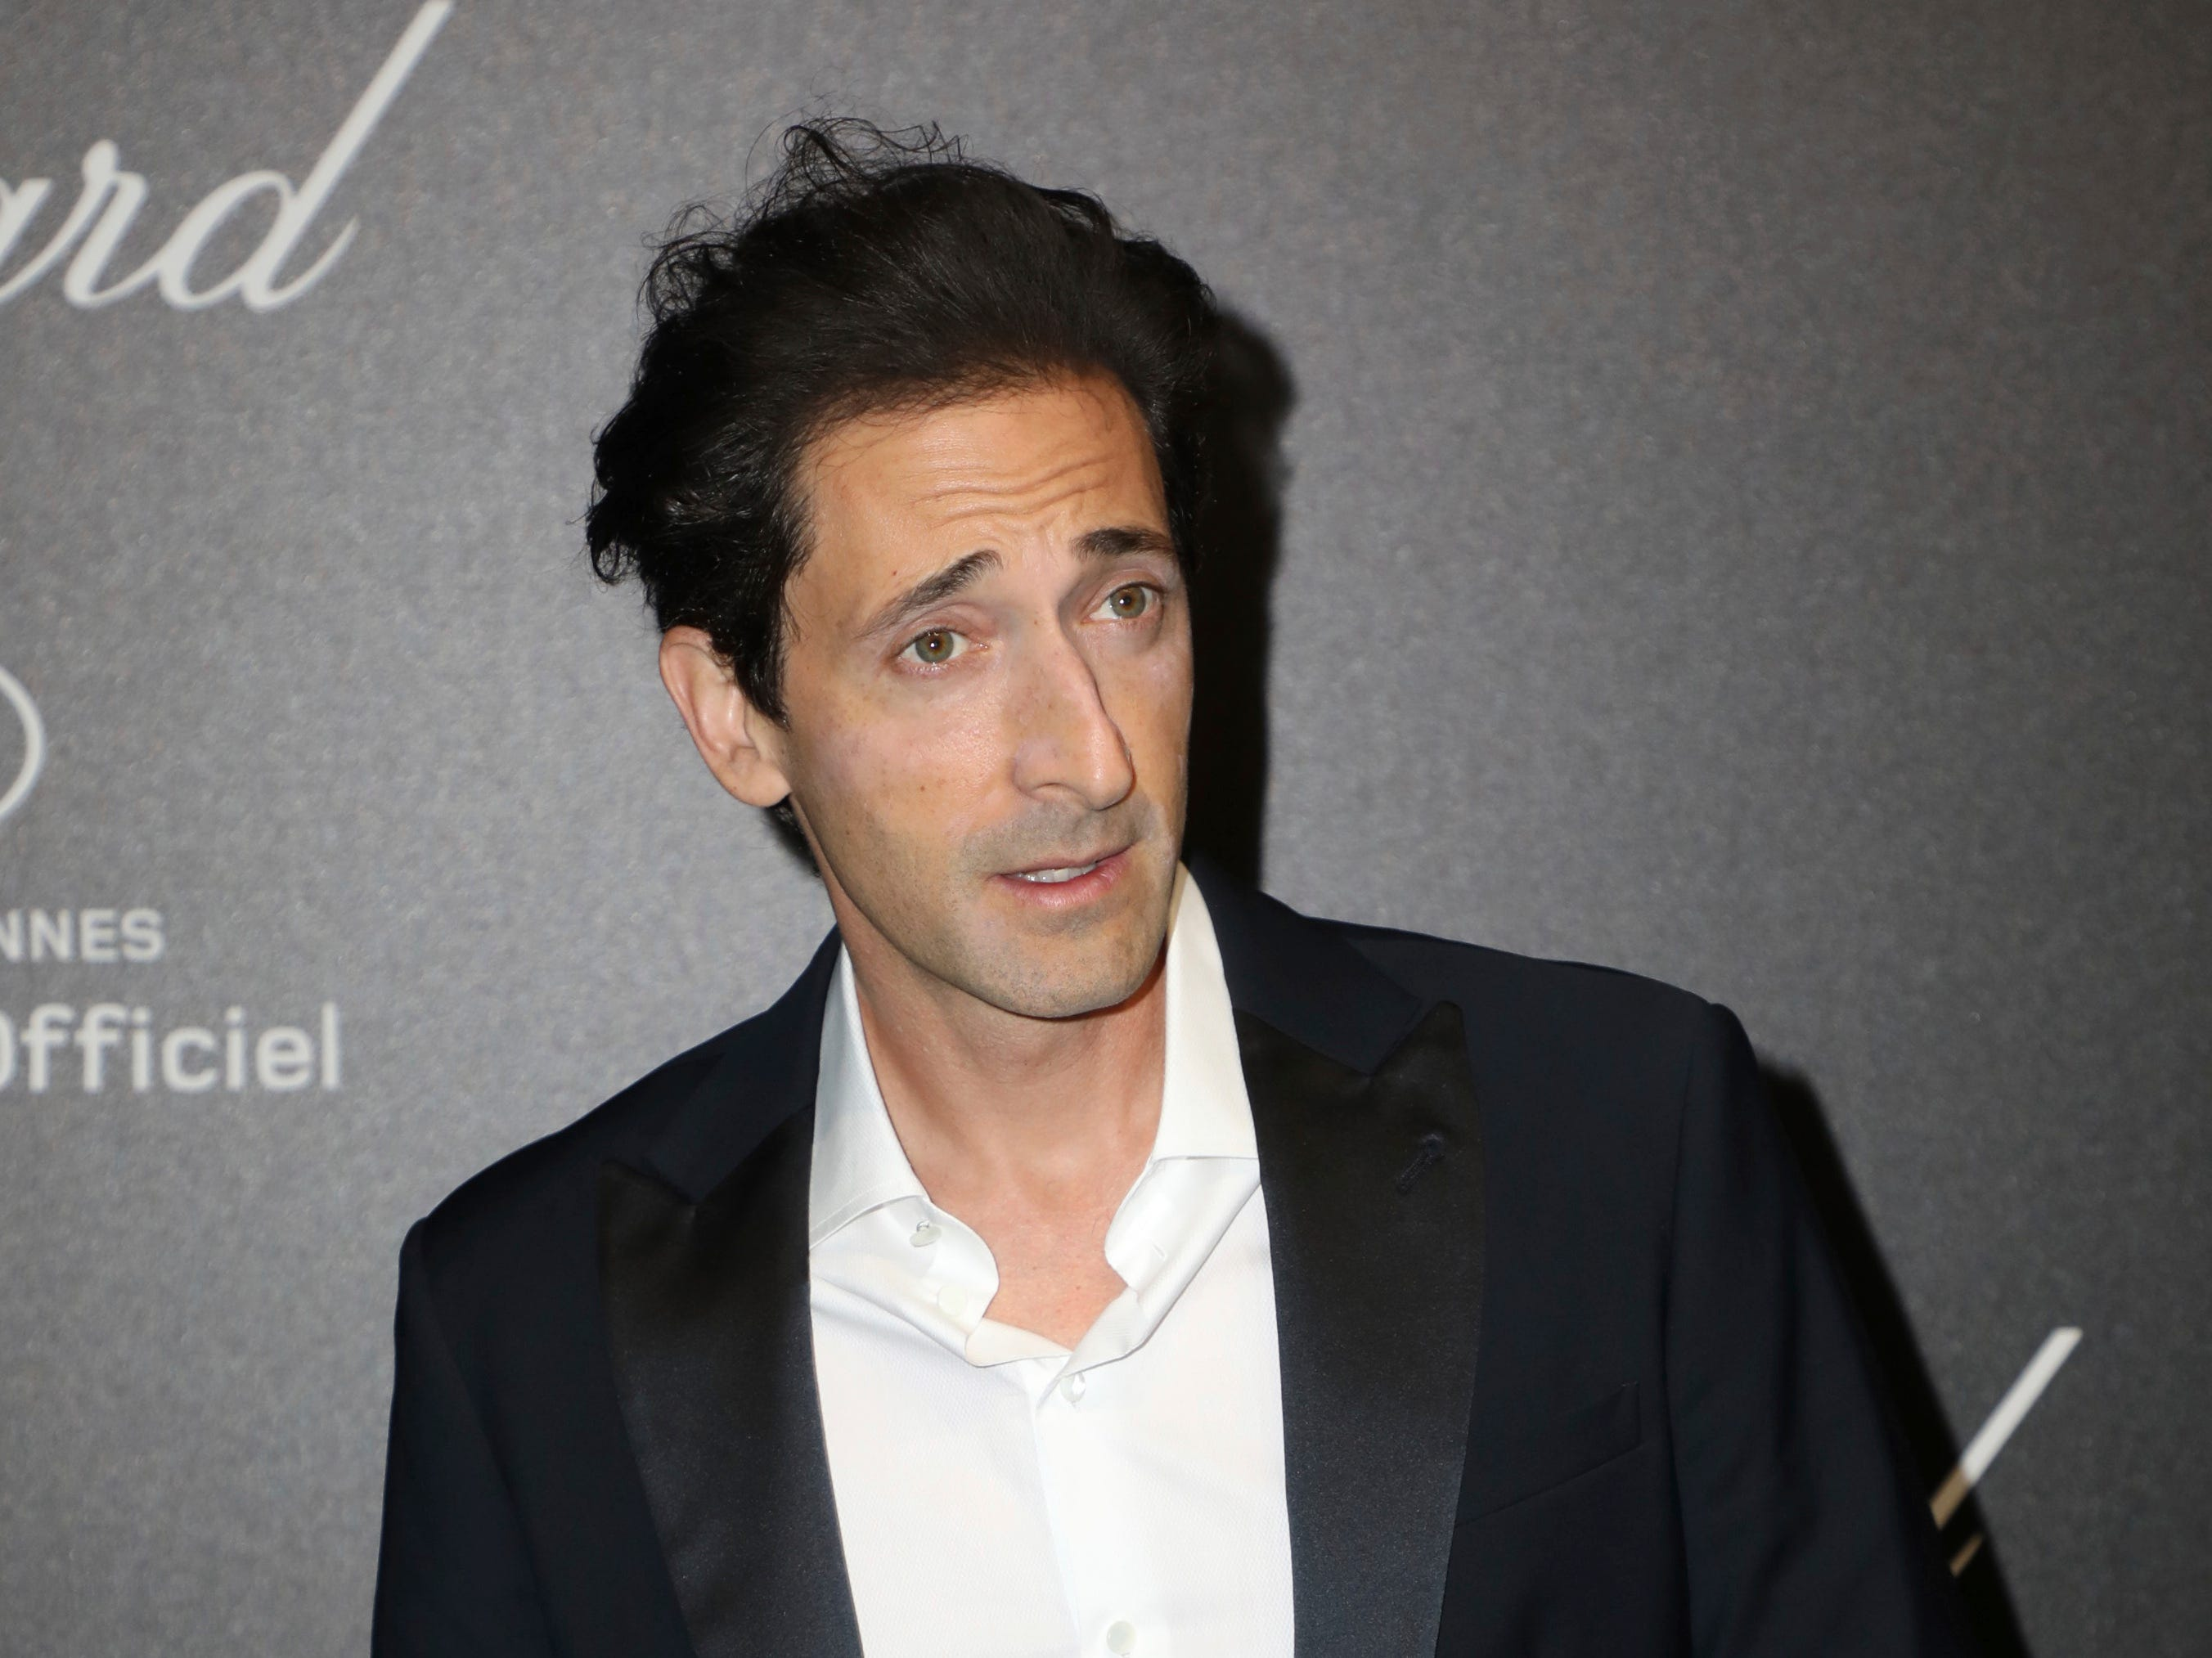 Actor Adrien Brody poses for photographers upon arrival at the Chopard Love event at the 72nd international film festival, Cannes, southern France, Friday, May 17, 2019.